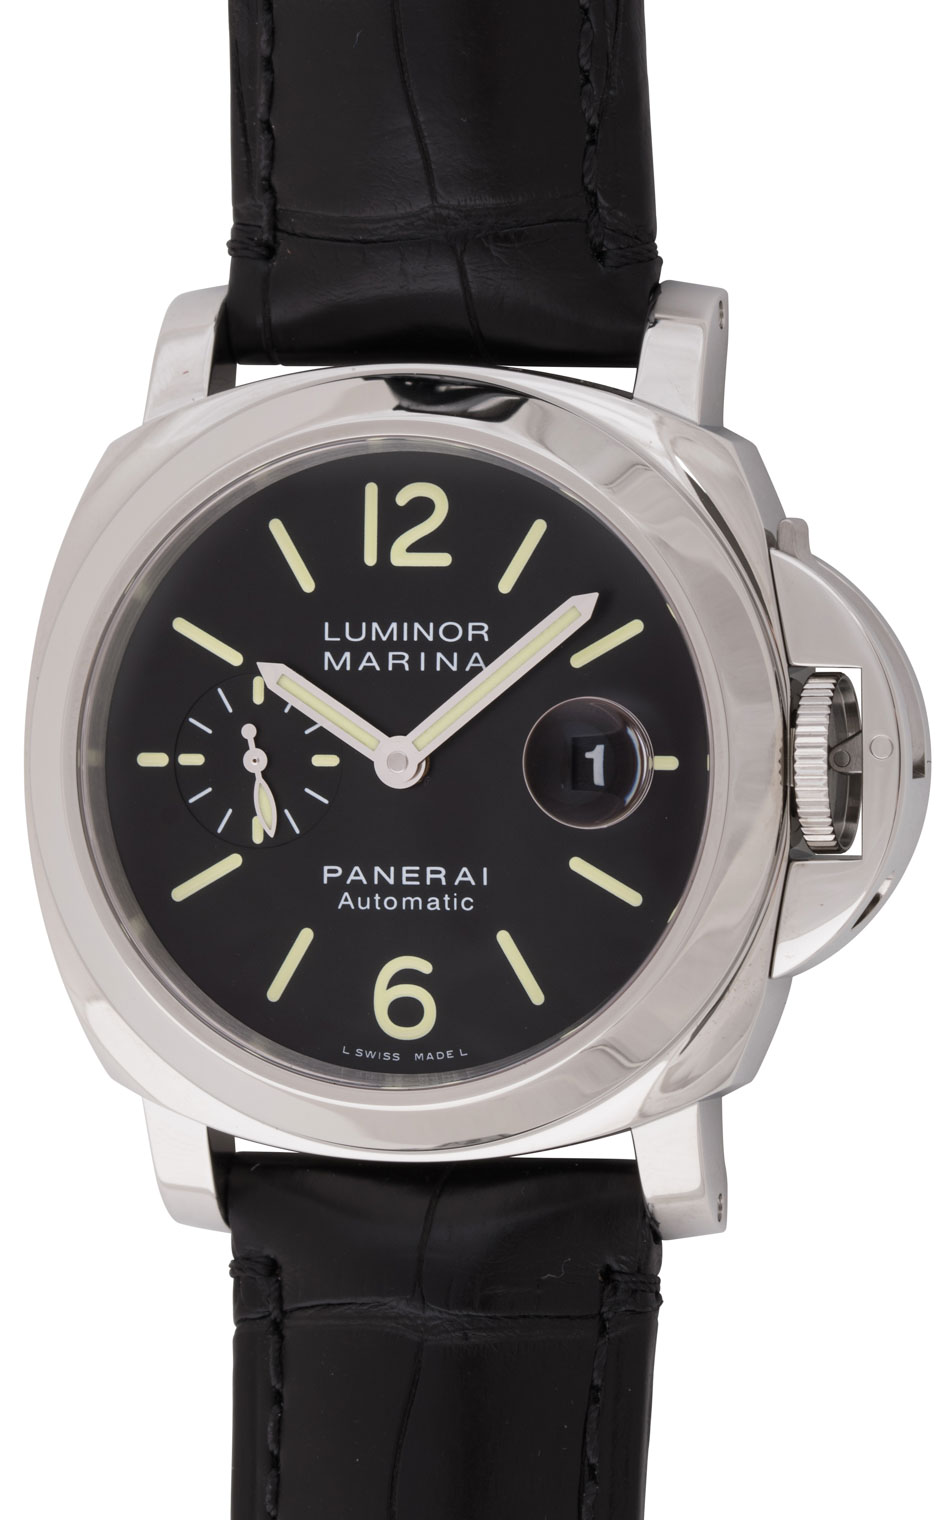 panerai luminor marina pam 104 bernard watch. Black Bedroom Furniture Sets. Home Design Ideas